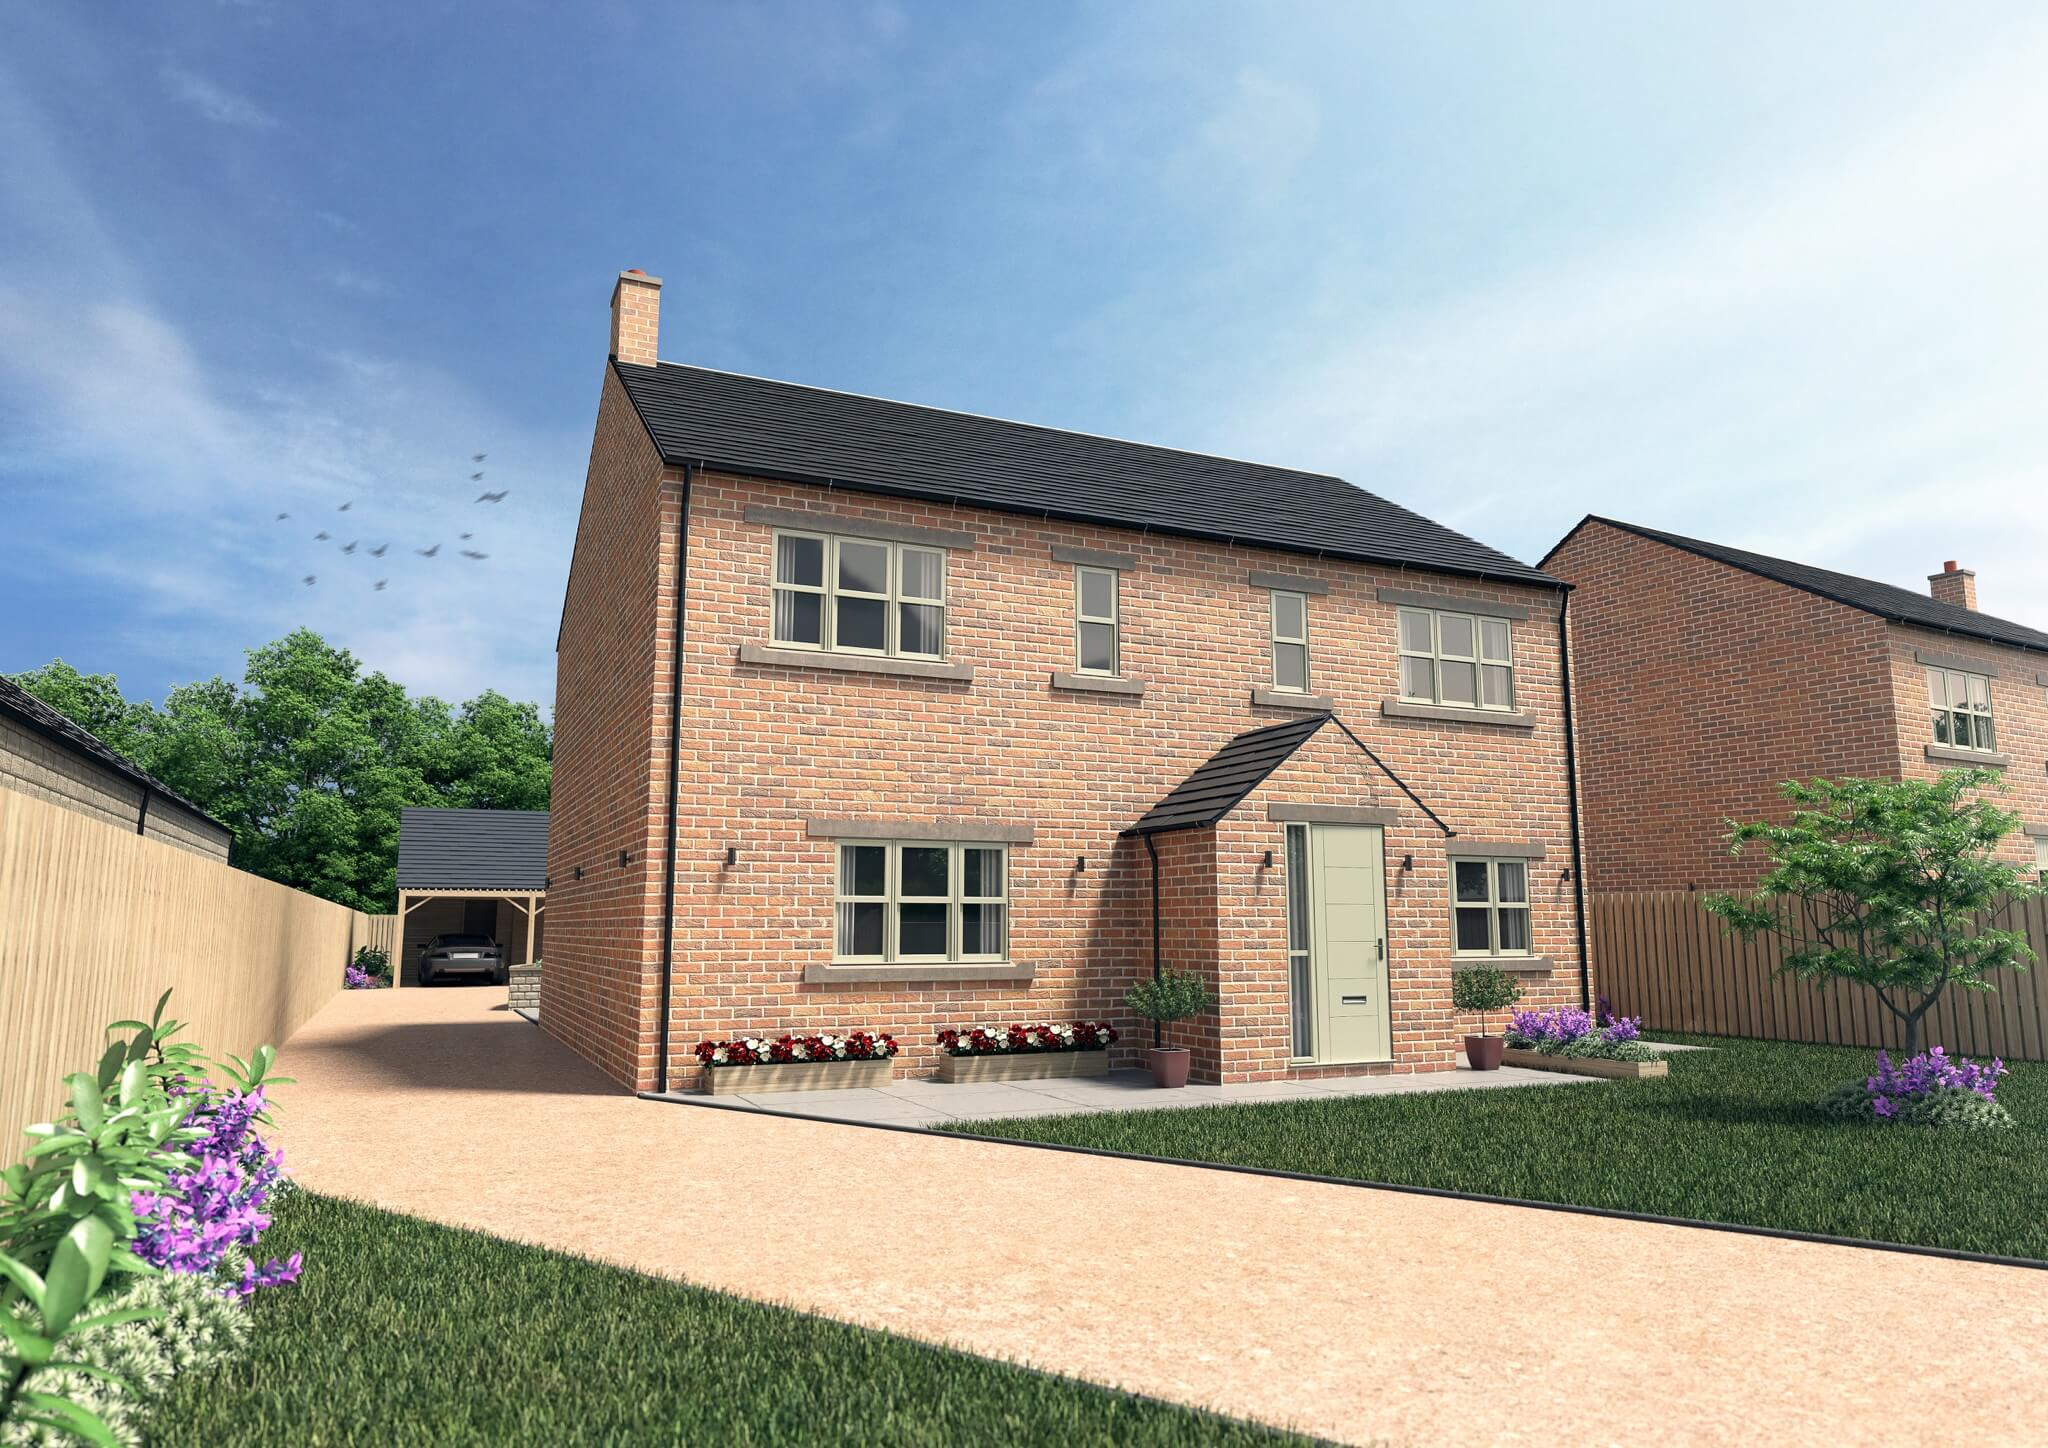 Harmby Homes Barley Court Staveley front view